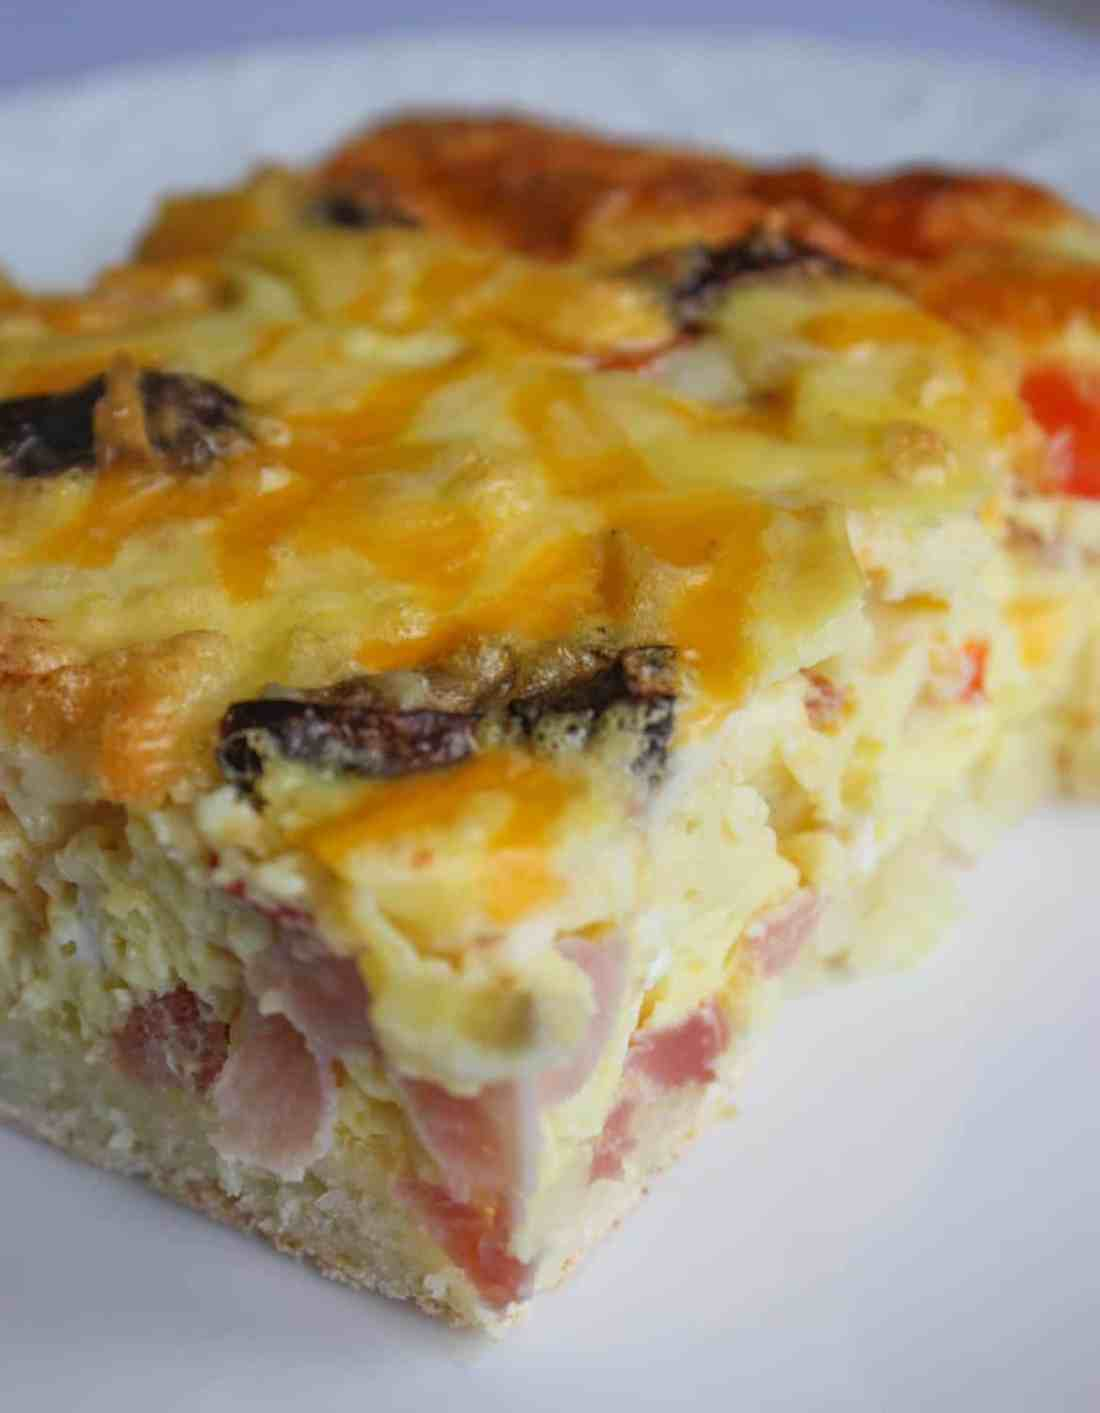 This Breakfast Casserole is a great alternative to the standard bacon and egg brunch or breakfast.  The egg layer is loaded with vegetables and meat before it is poured over a gluten free crust.